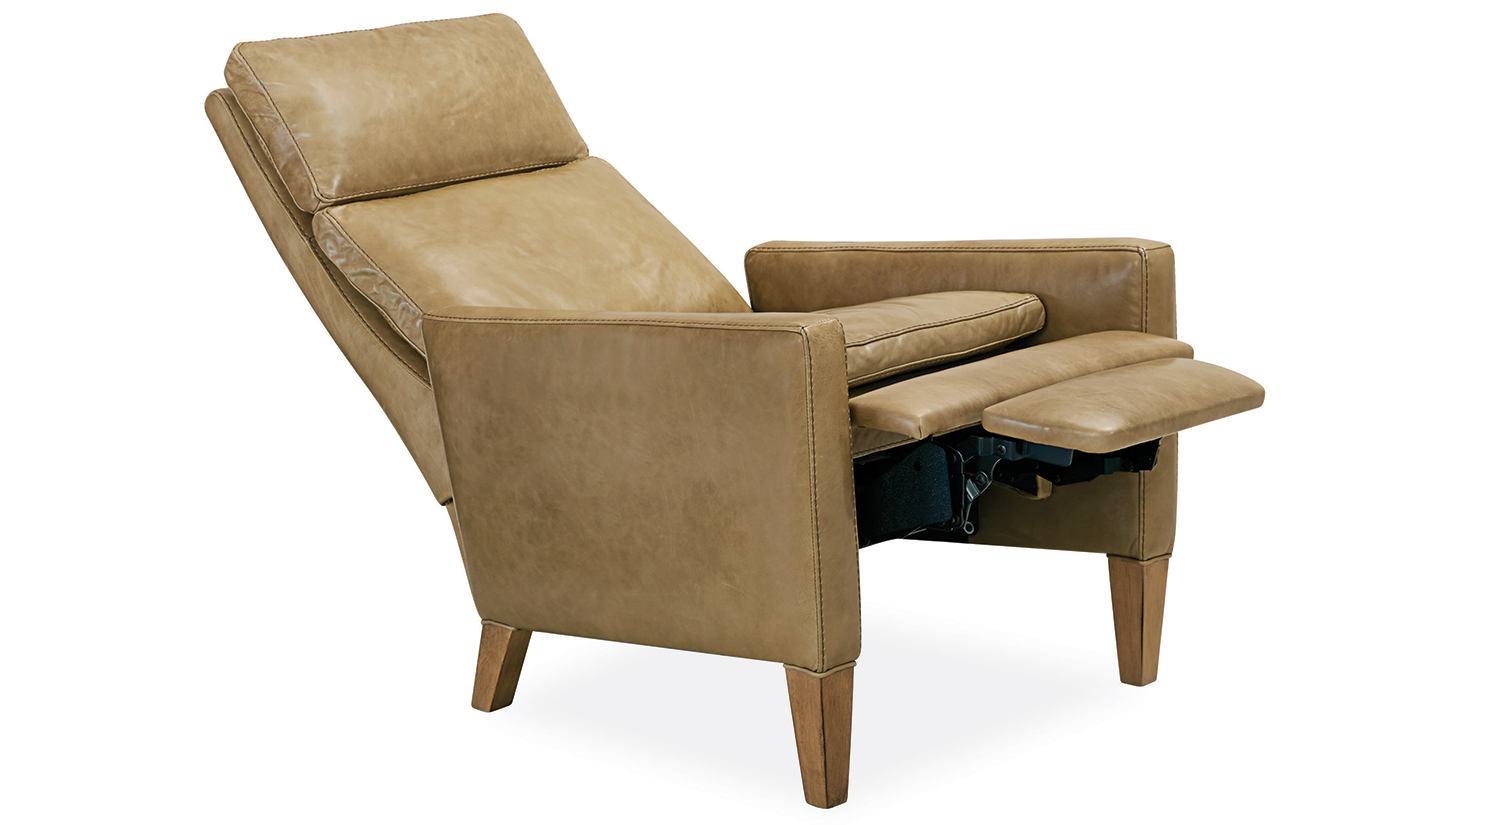 Circle Furniture - Max Recliner  Leather and Fabric Recliers ...